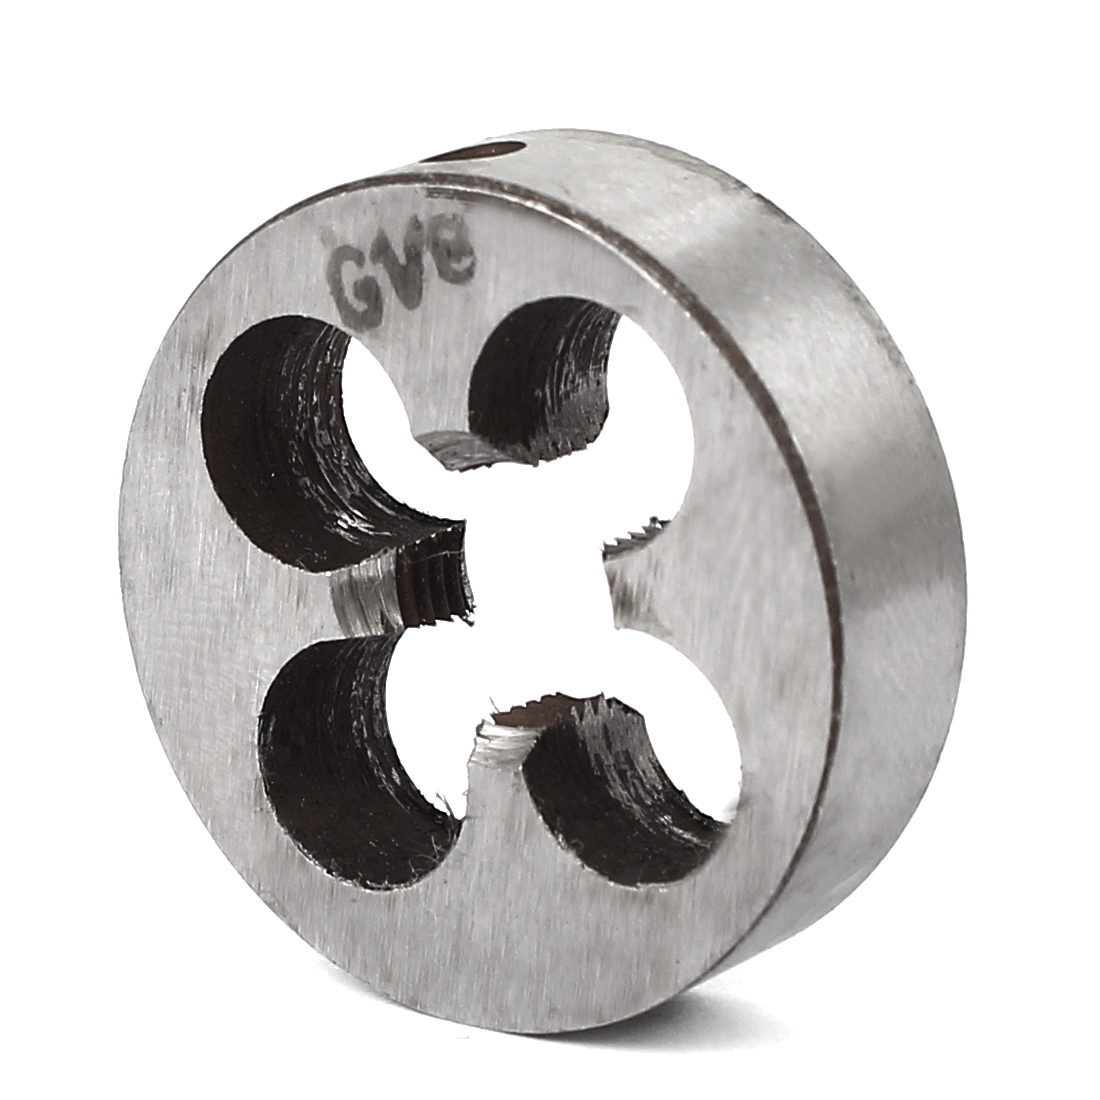 1/8BSP 30mm OD 8mm Height Round Threading Thread Die